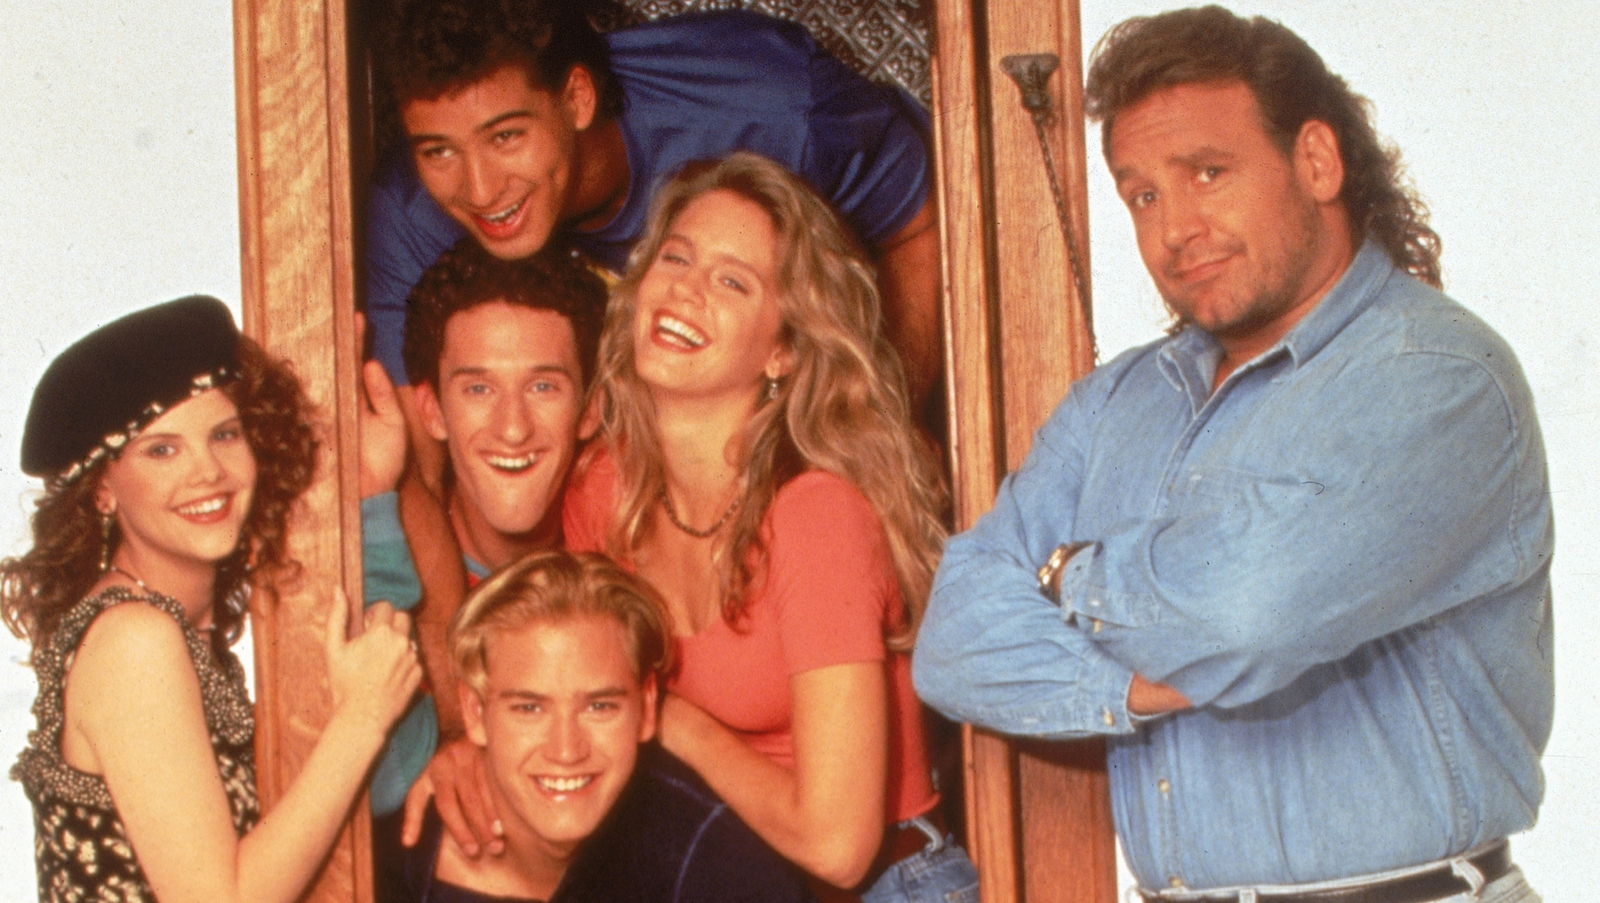 Saved by the Bell stars returning for sequel series